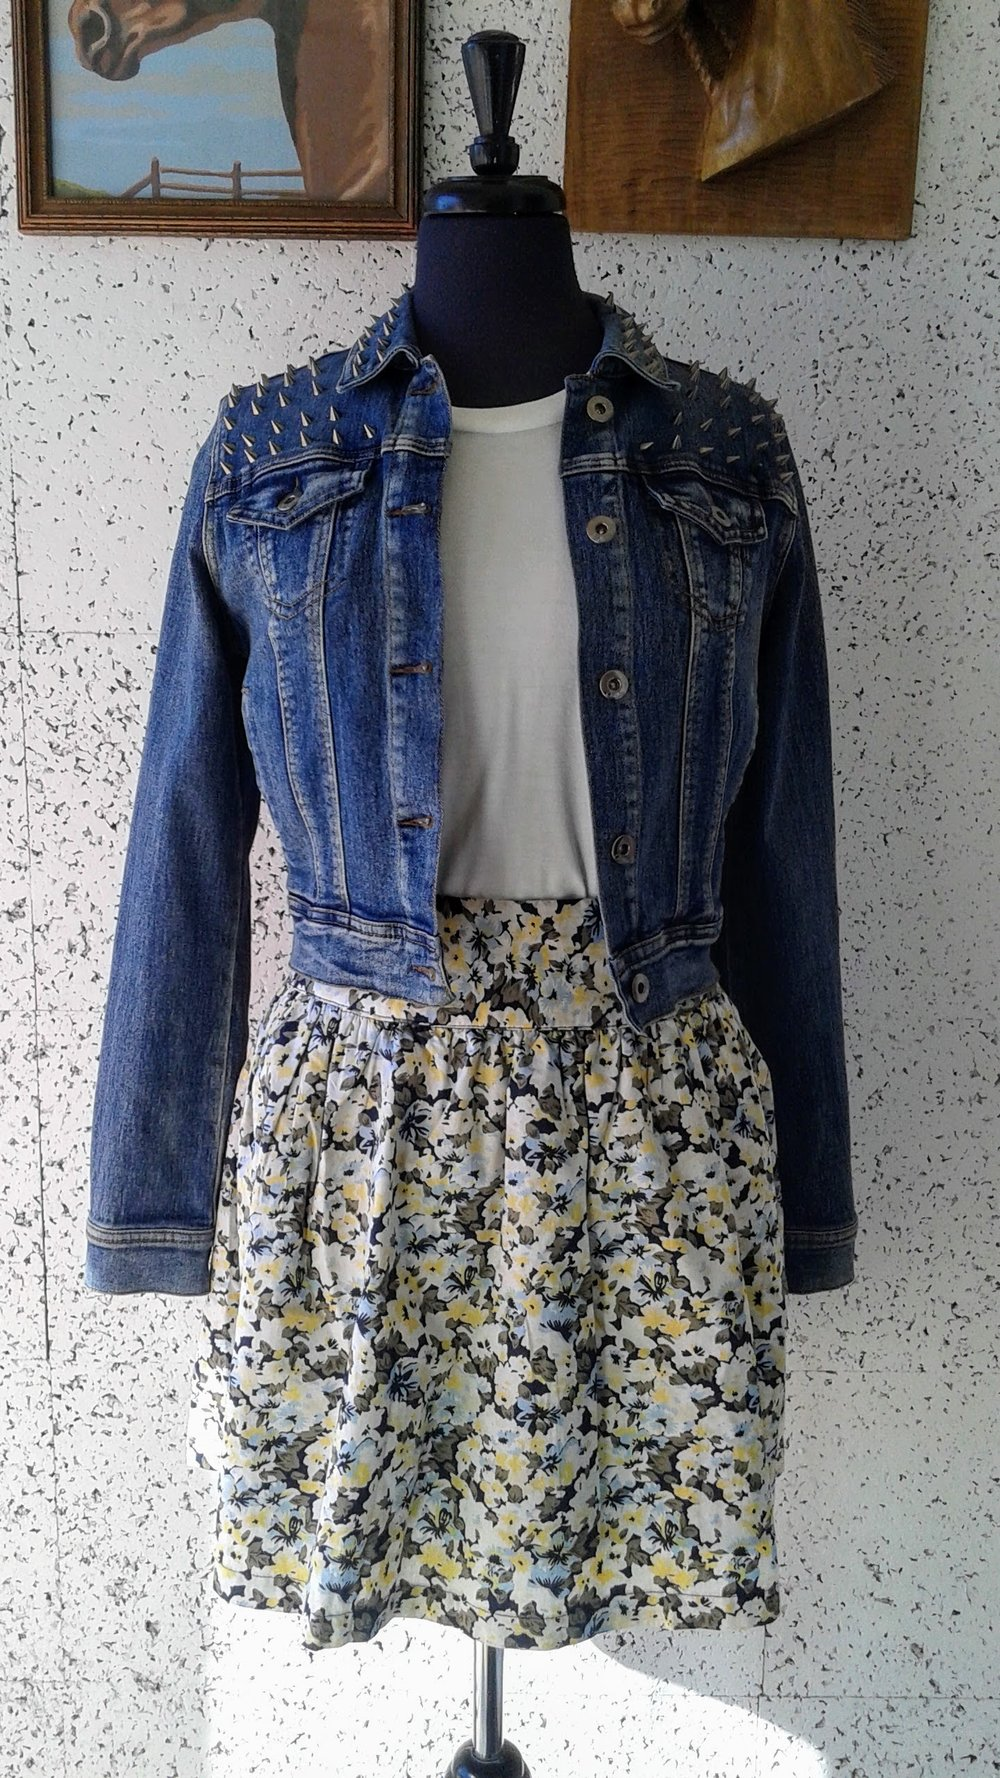 Denim jacket; Size S, $30. Vero Moda skirt; Size S, $22